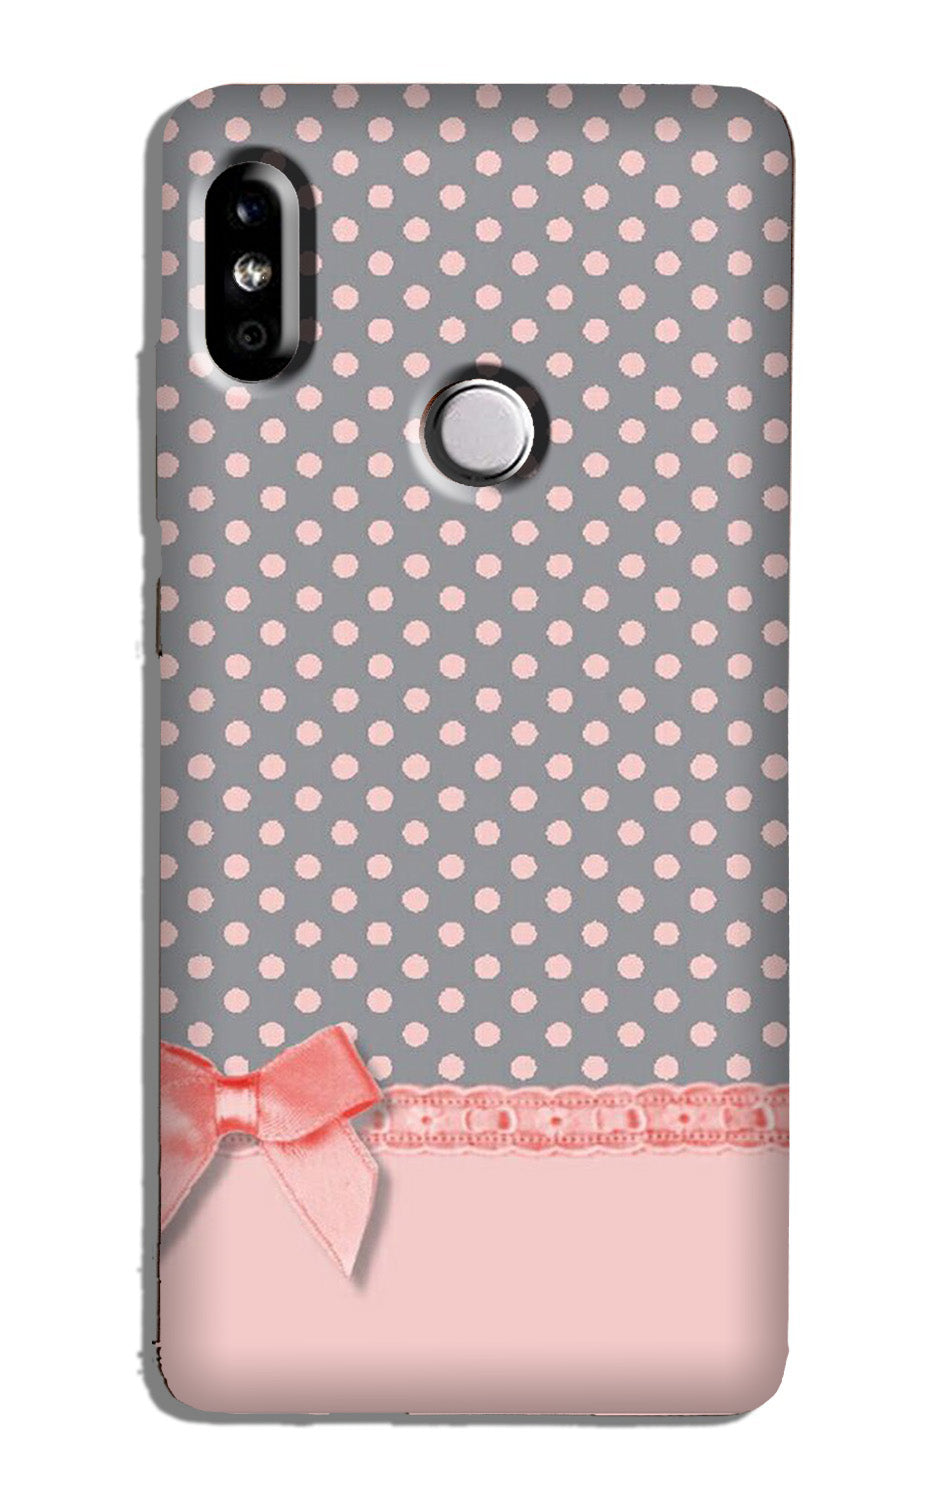 Gift Wrap2 Case for Redmi 6 Pro